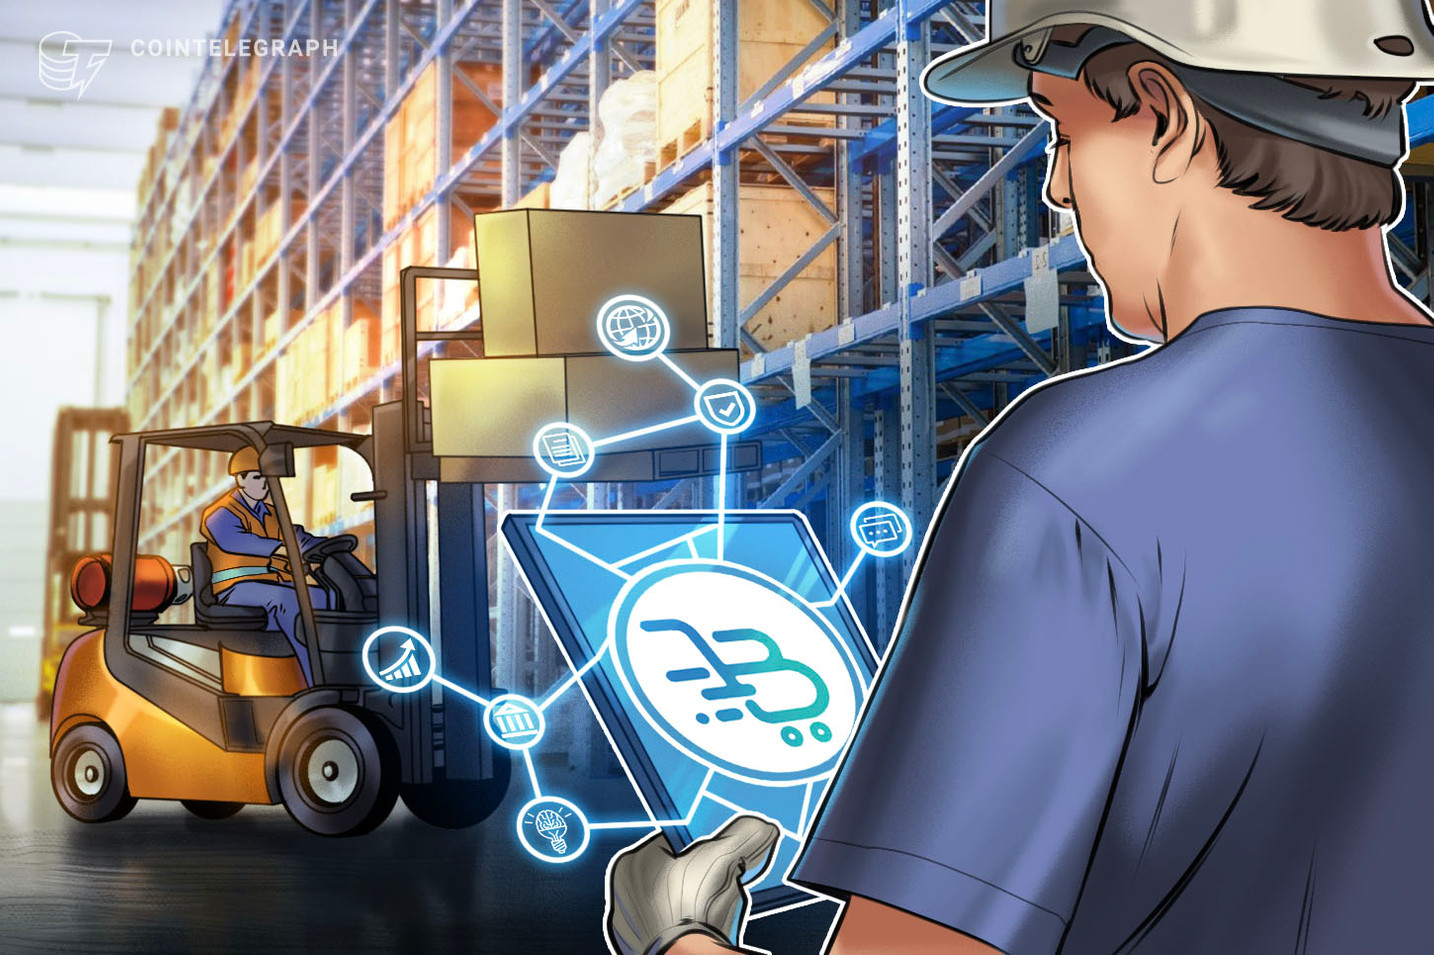 E-Commerce on Demand: Crypto-Based Site With 50,000 Products Offers Delivery in Two Hours